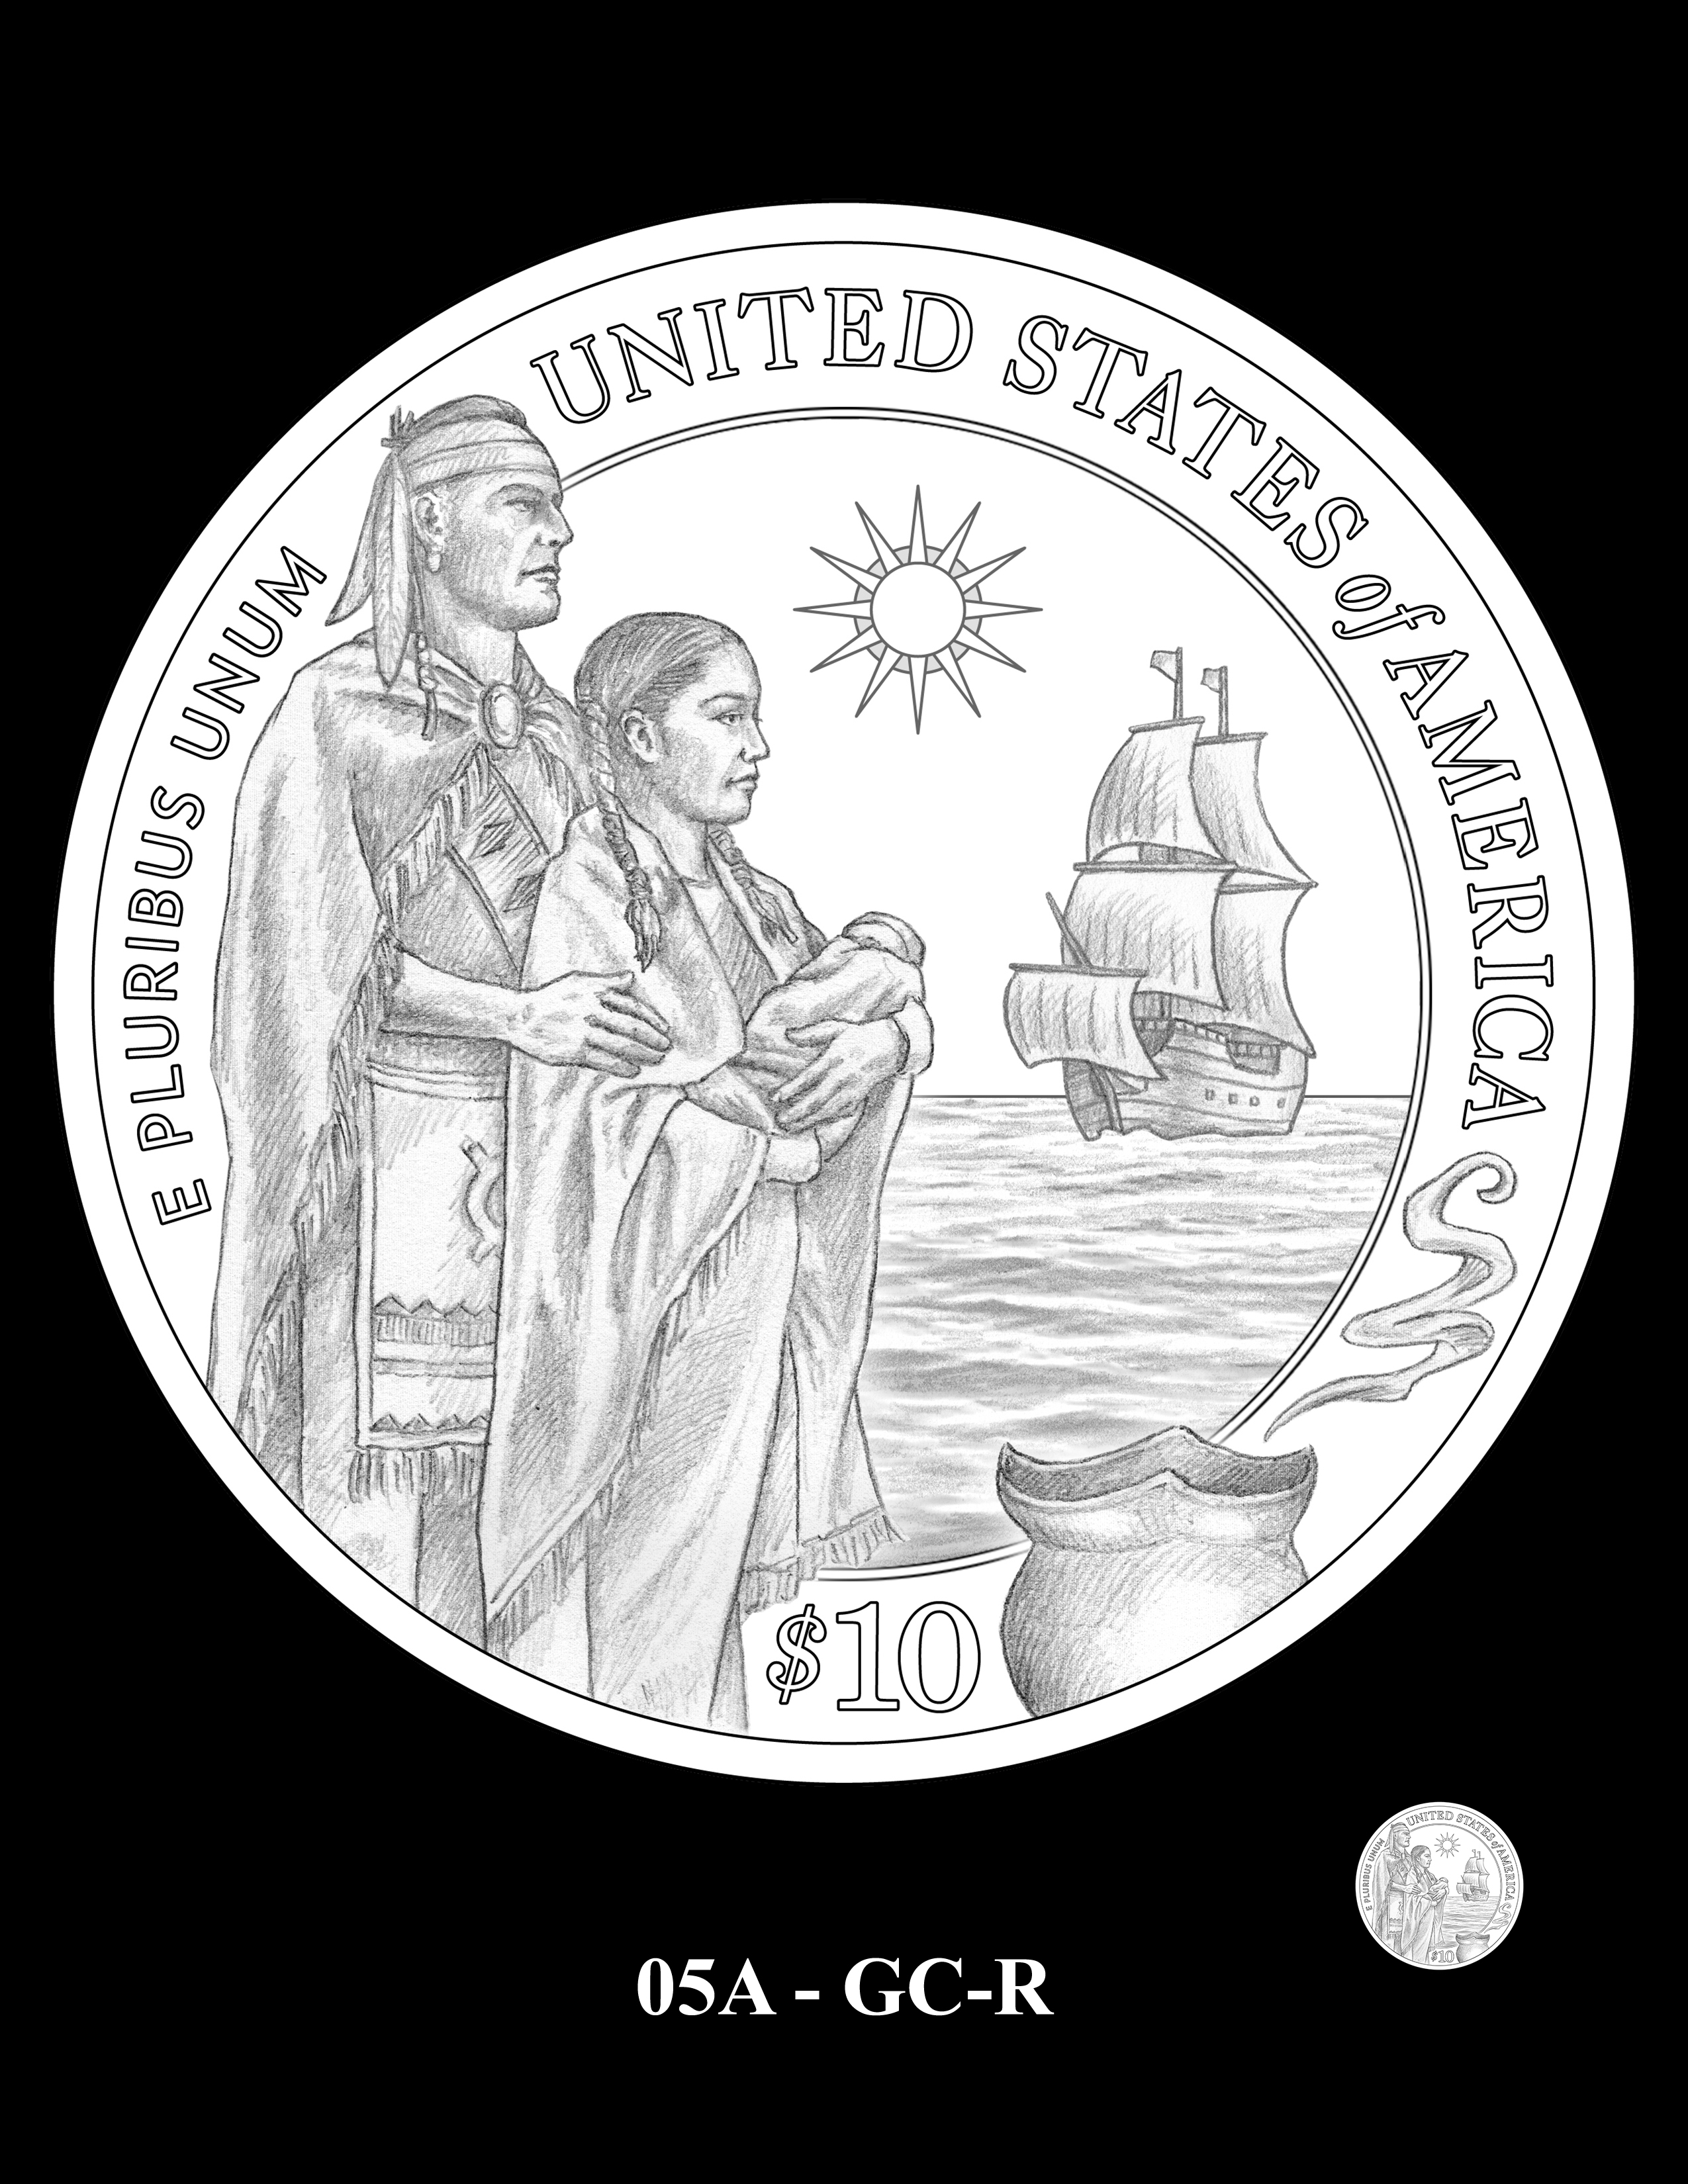 05A-GC-R - 2020 Mayflower 400th Anniversary 24K Gold Coin & Silver Medal Program